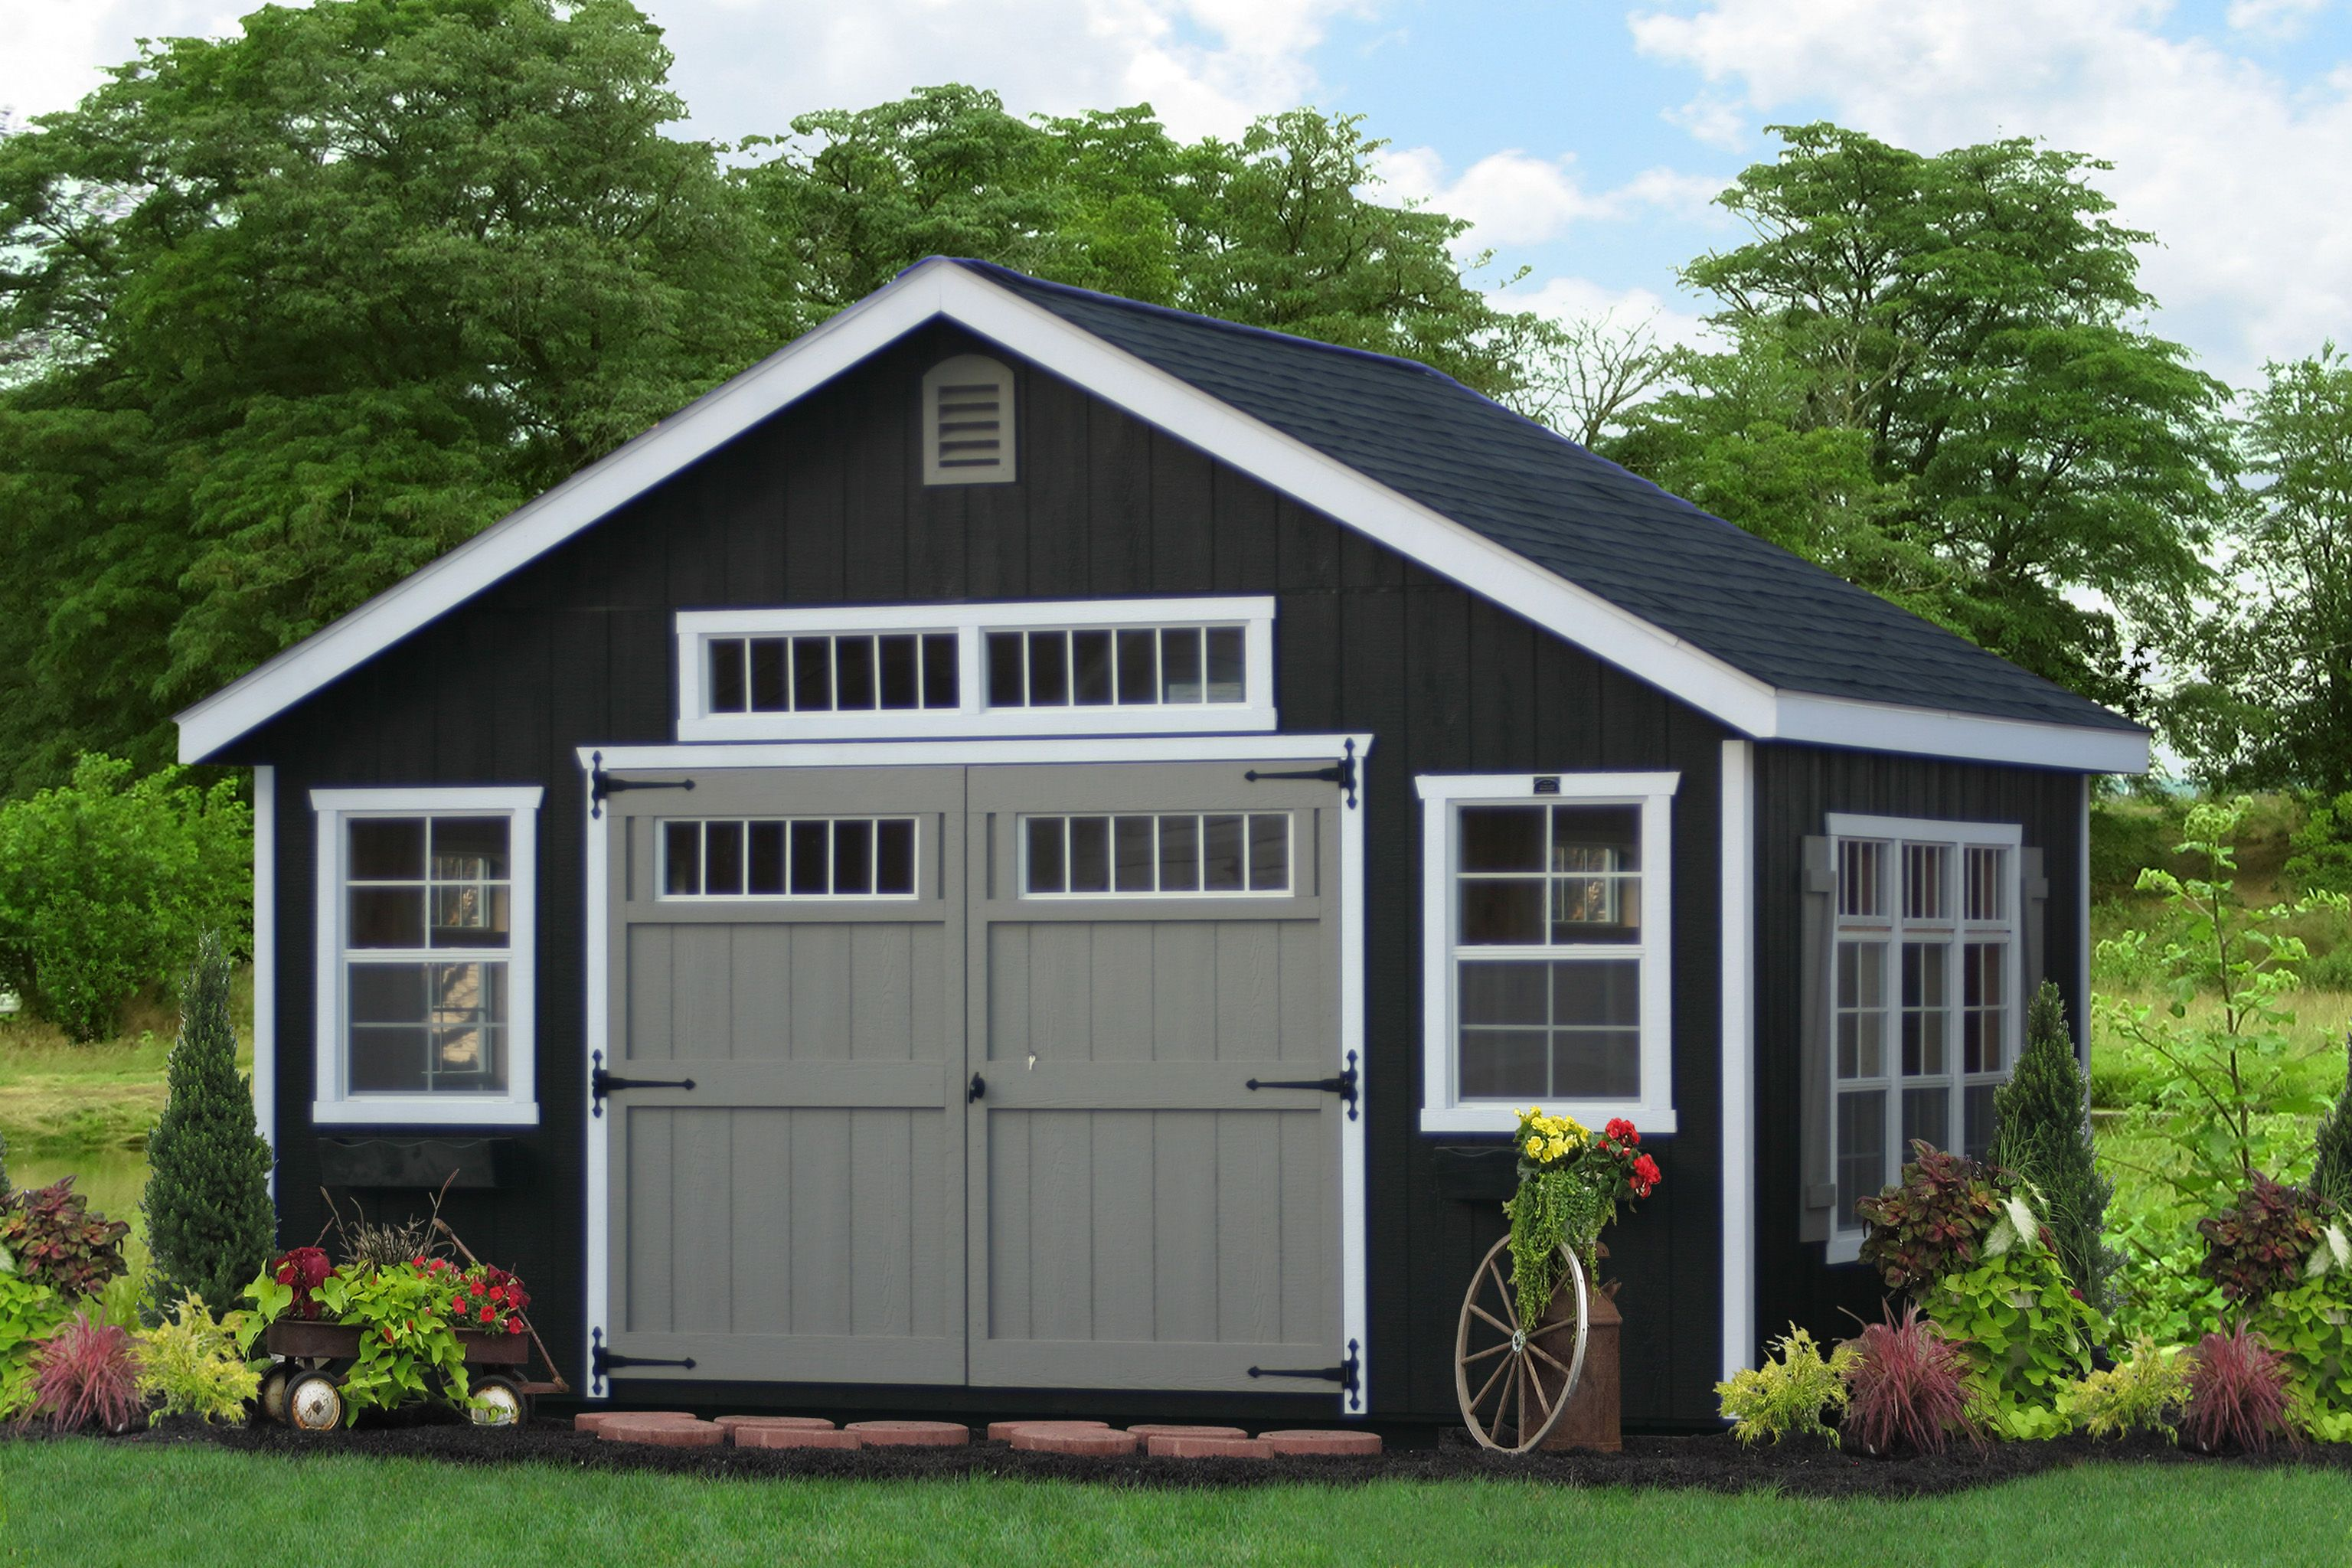 rubbermaid outdoor x choose storage feet best bob for to vila large your sheds slideshow backyard the shed